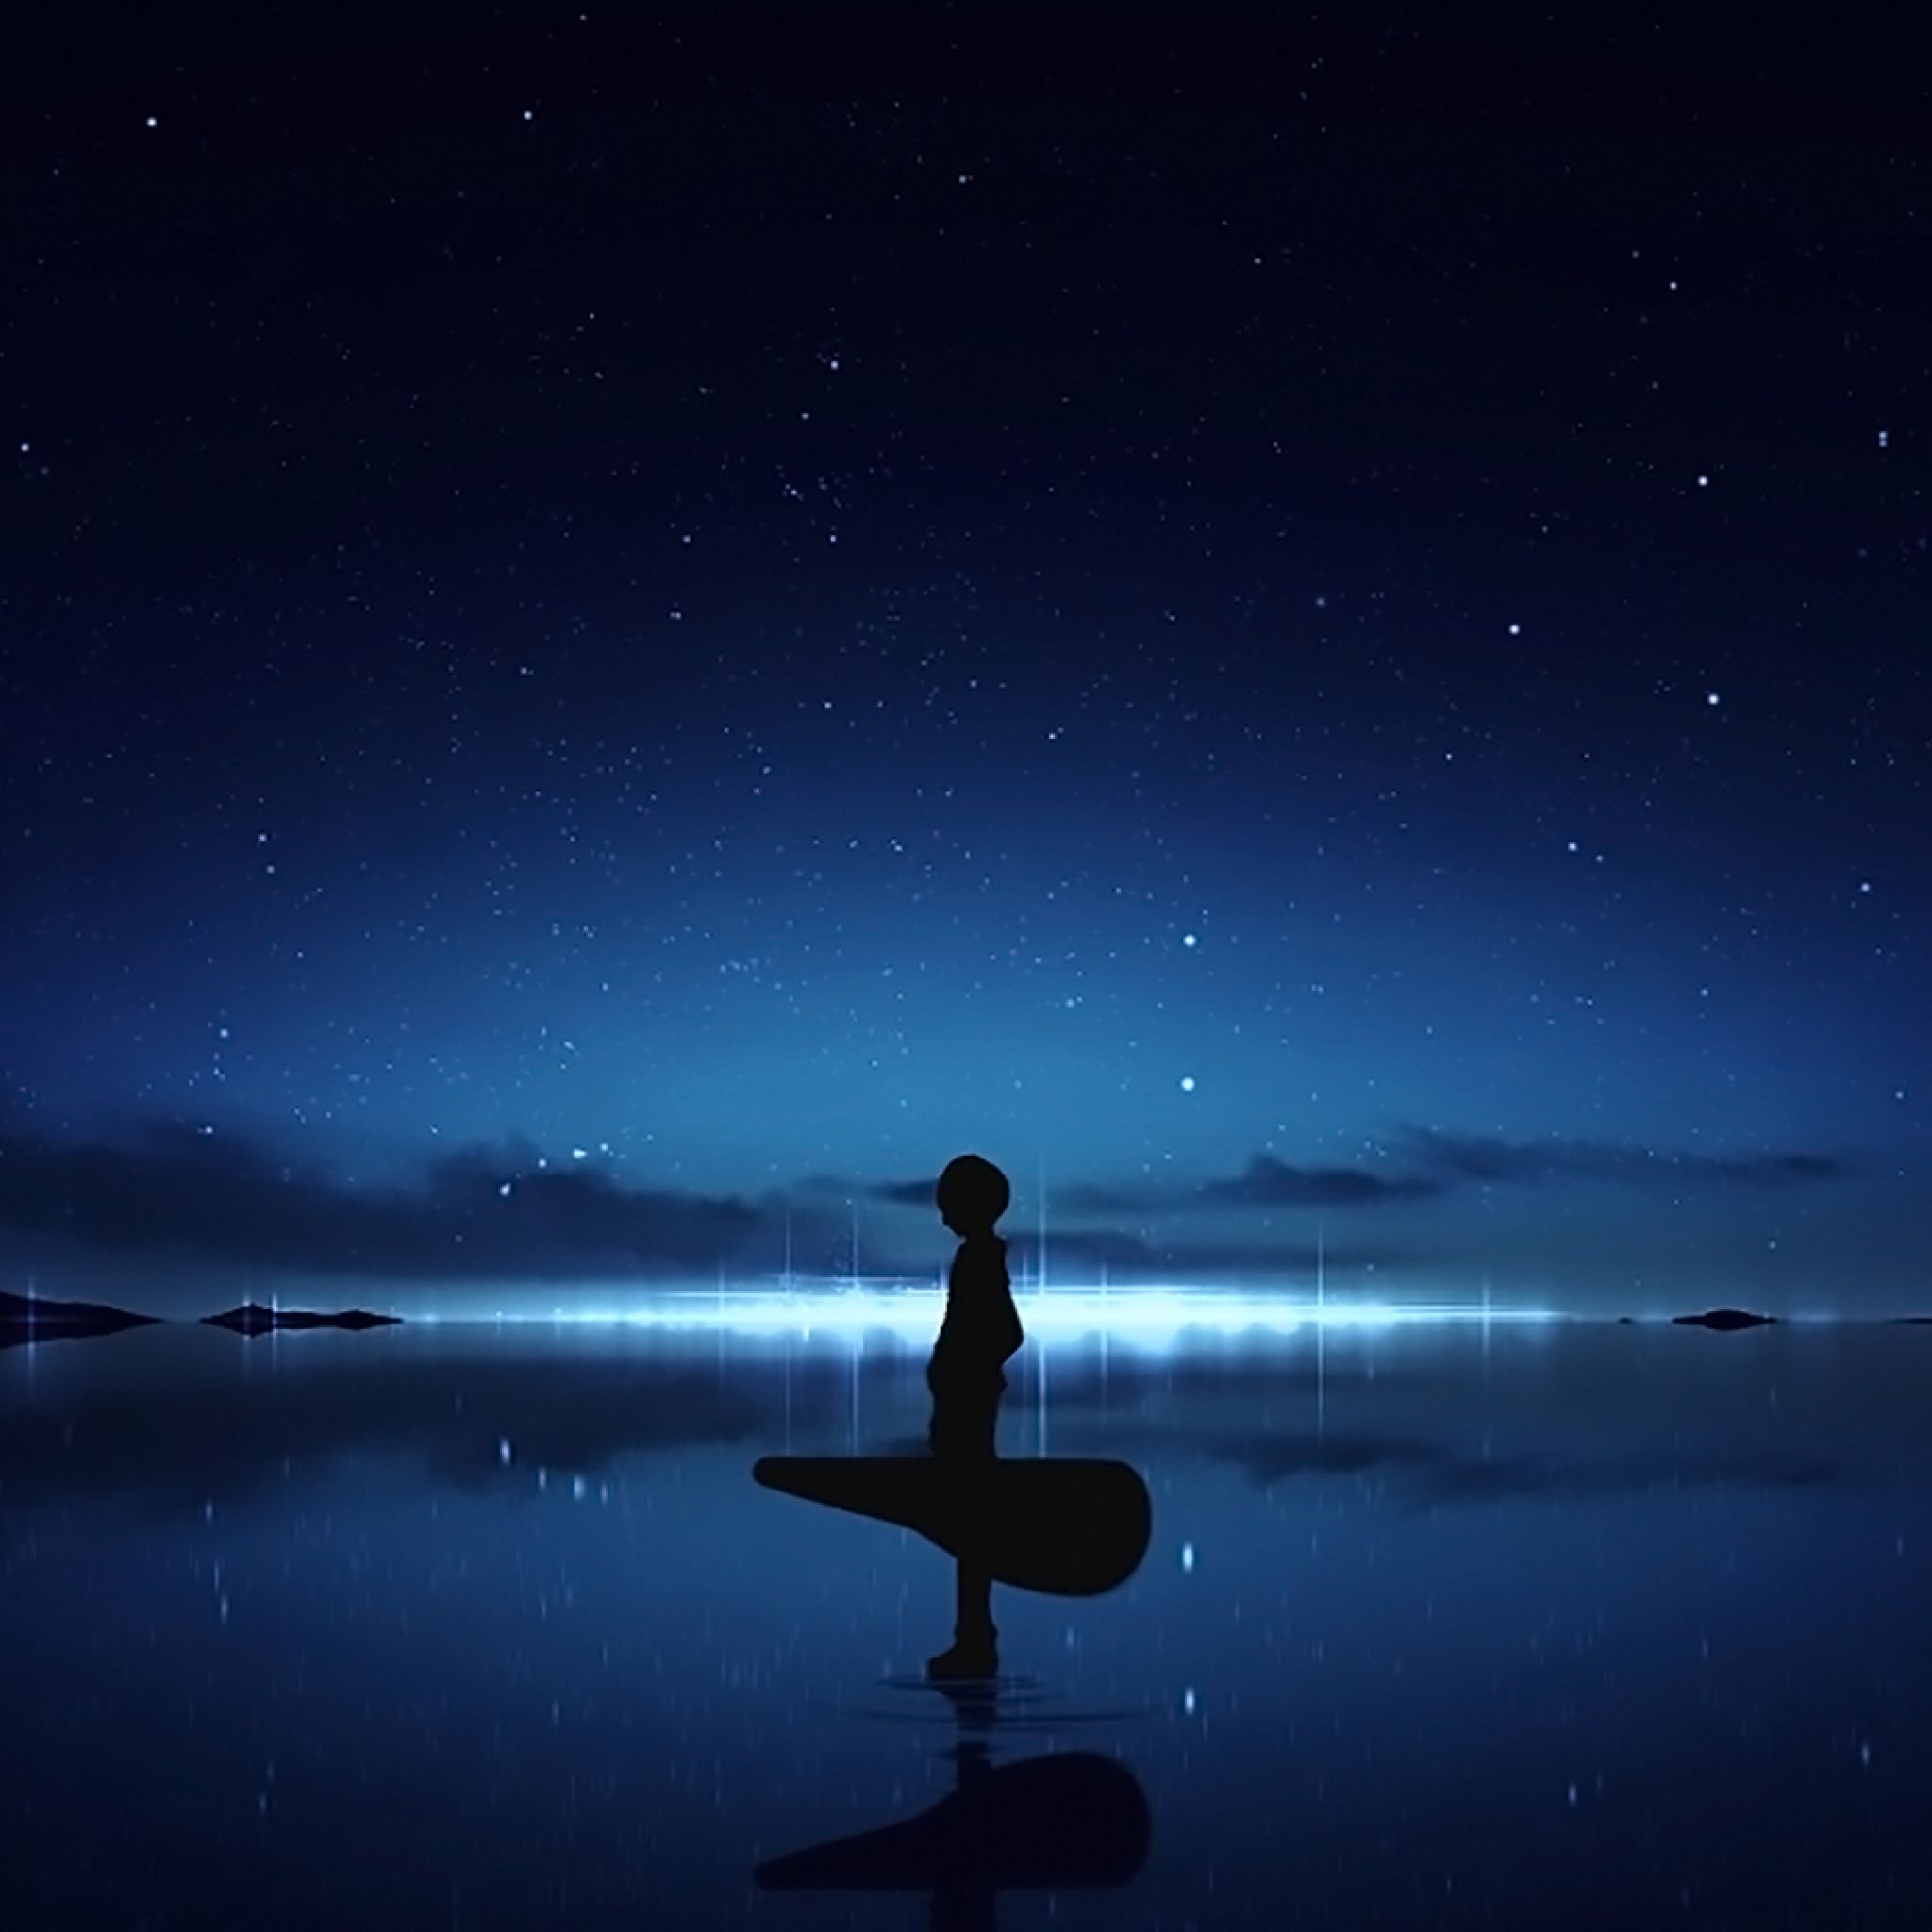 Lonely Boy Anime Pics Wallpapers - Wallpaper Cave